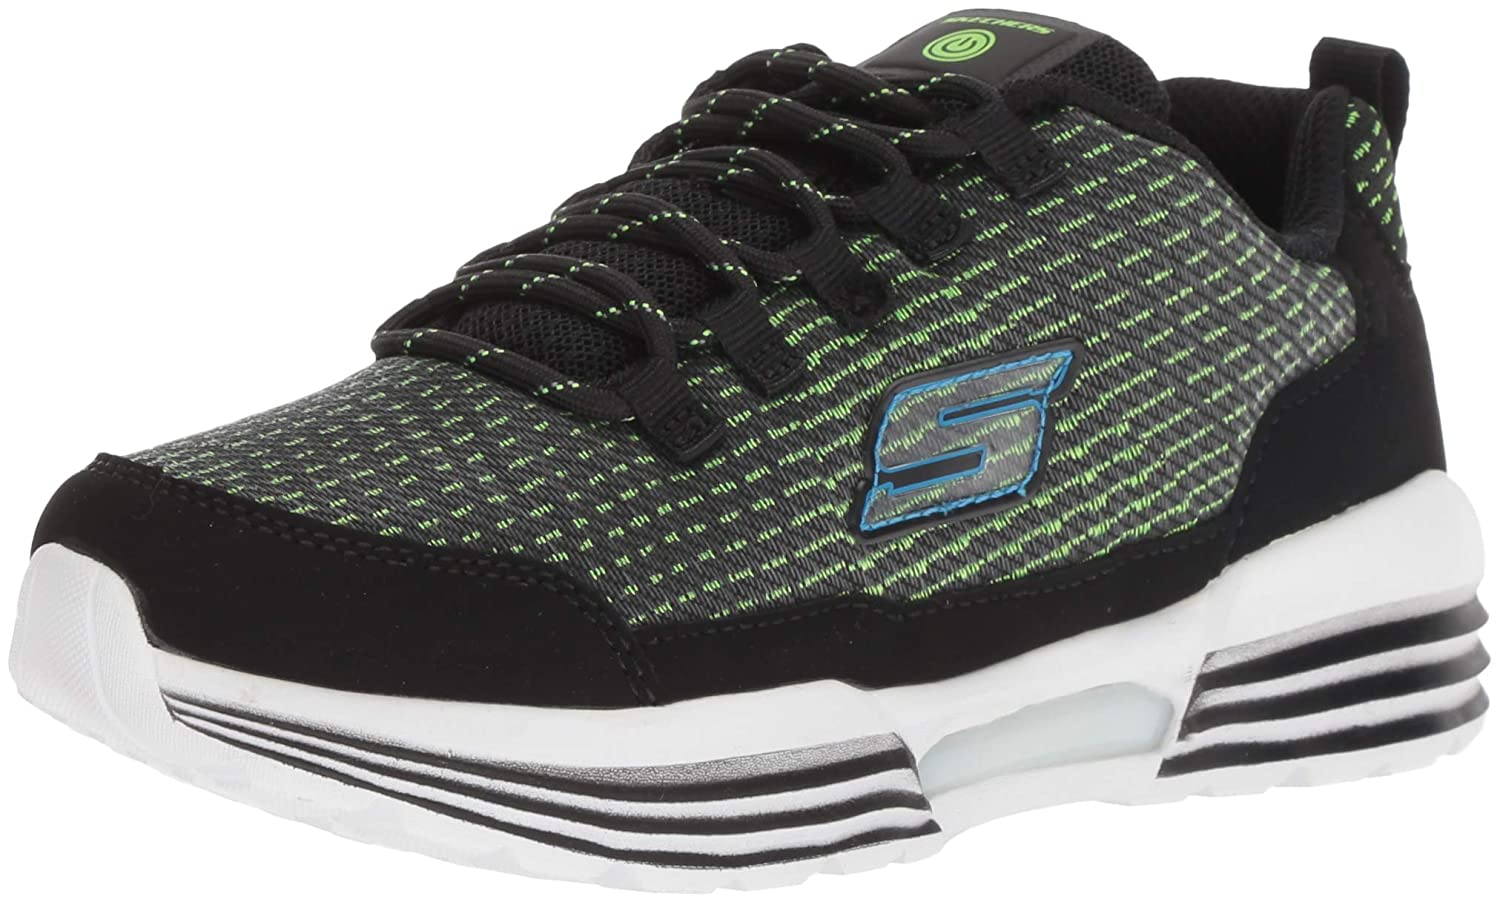 Skechers Kids' S Lights-Luminators Sneaker 90730L